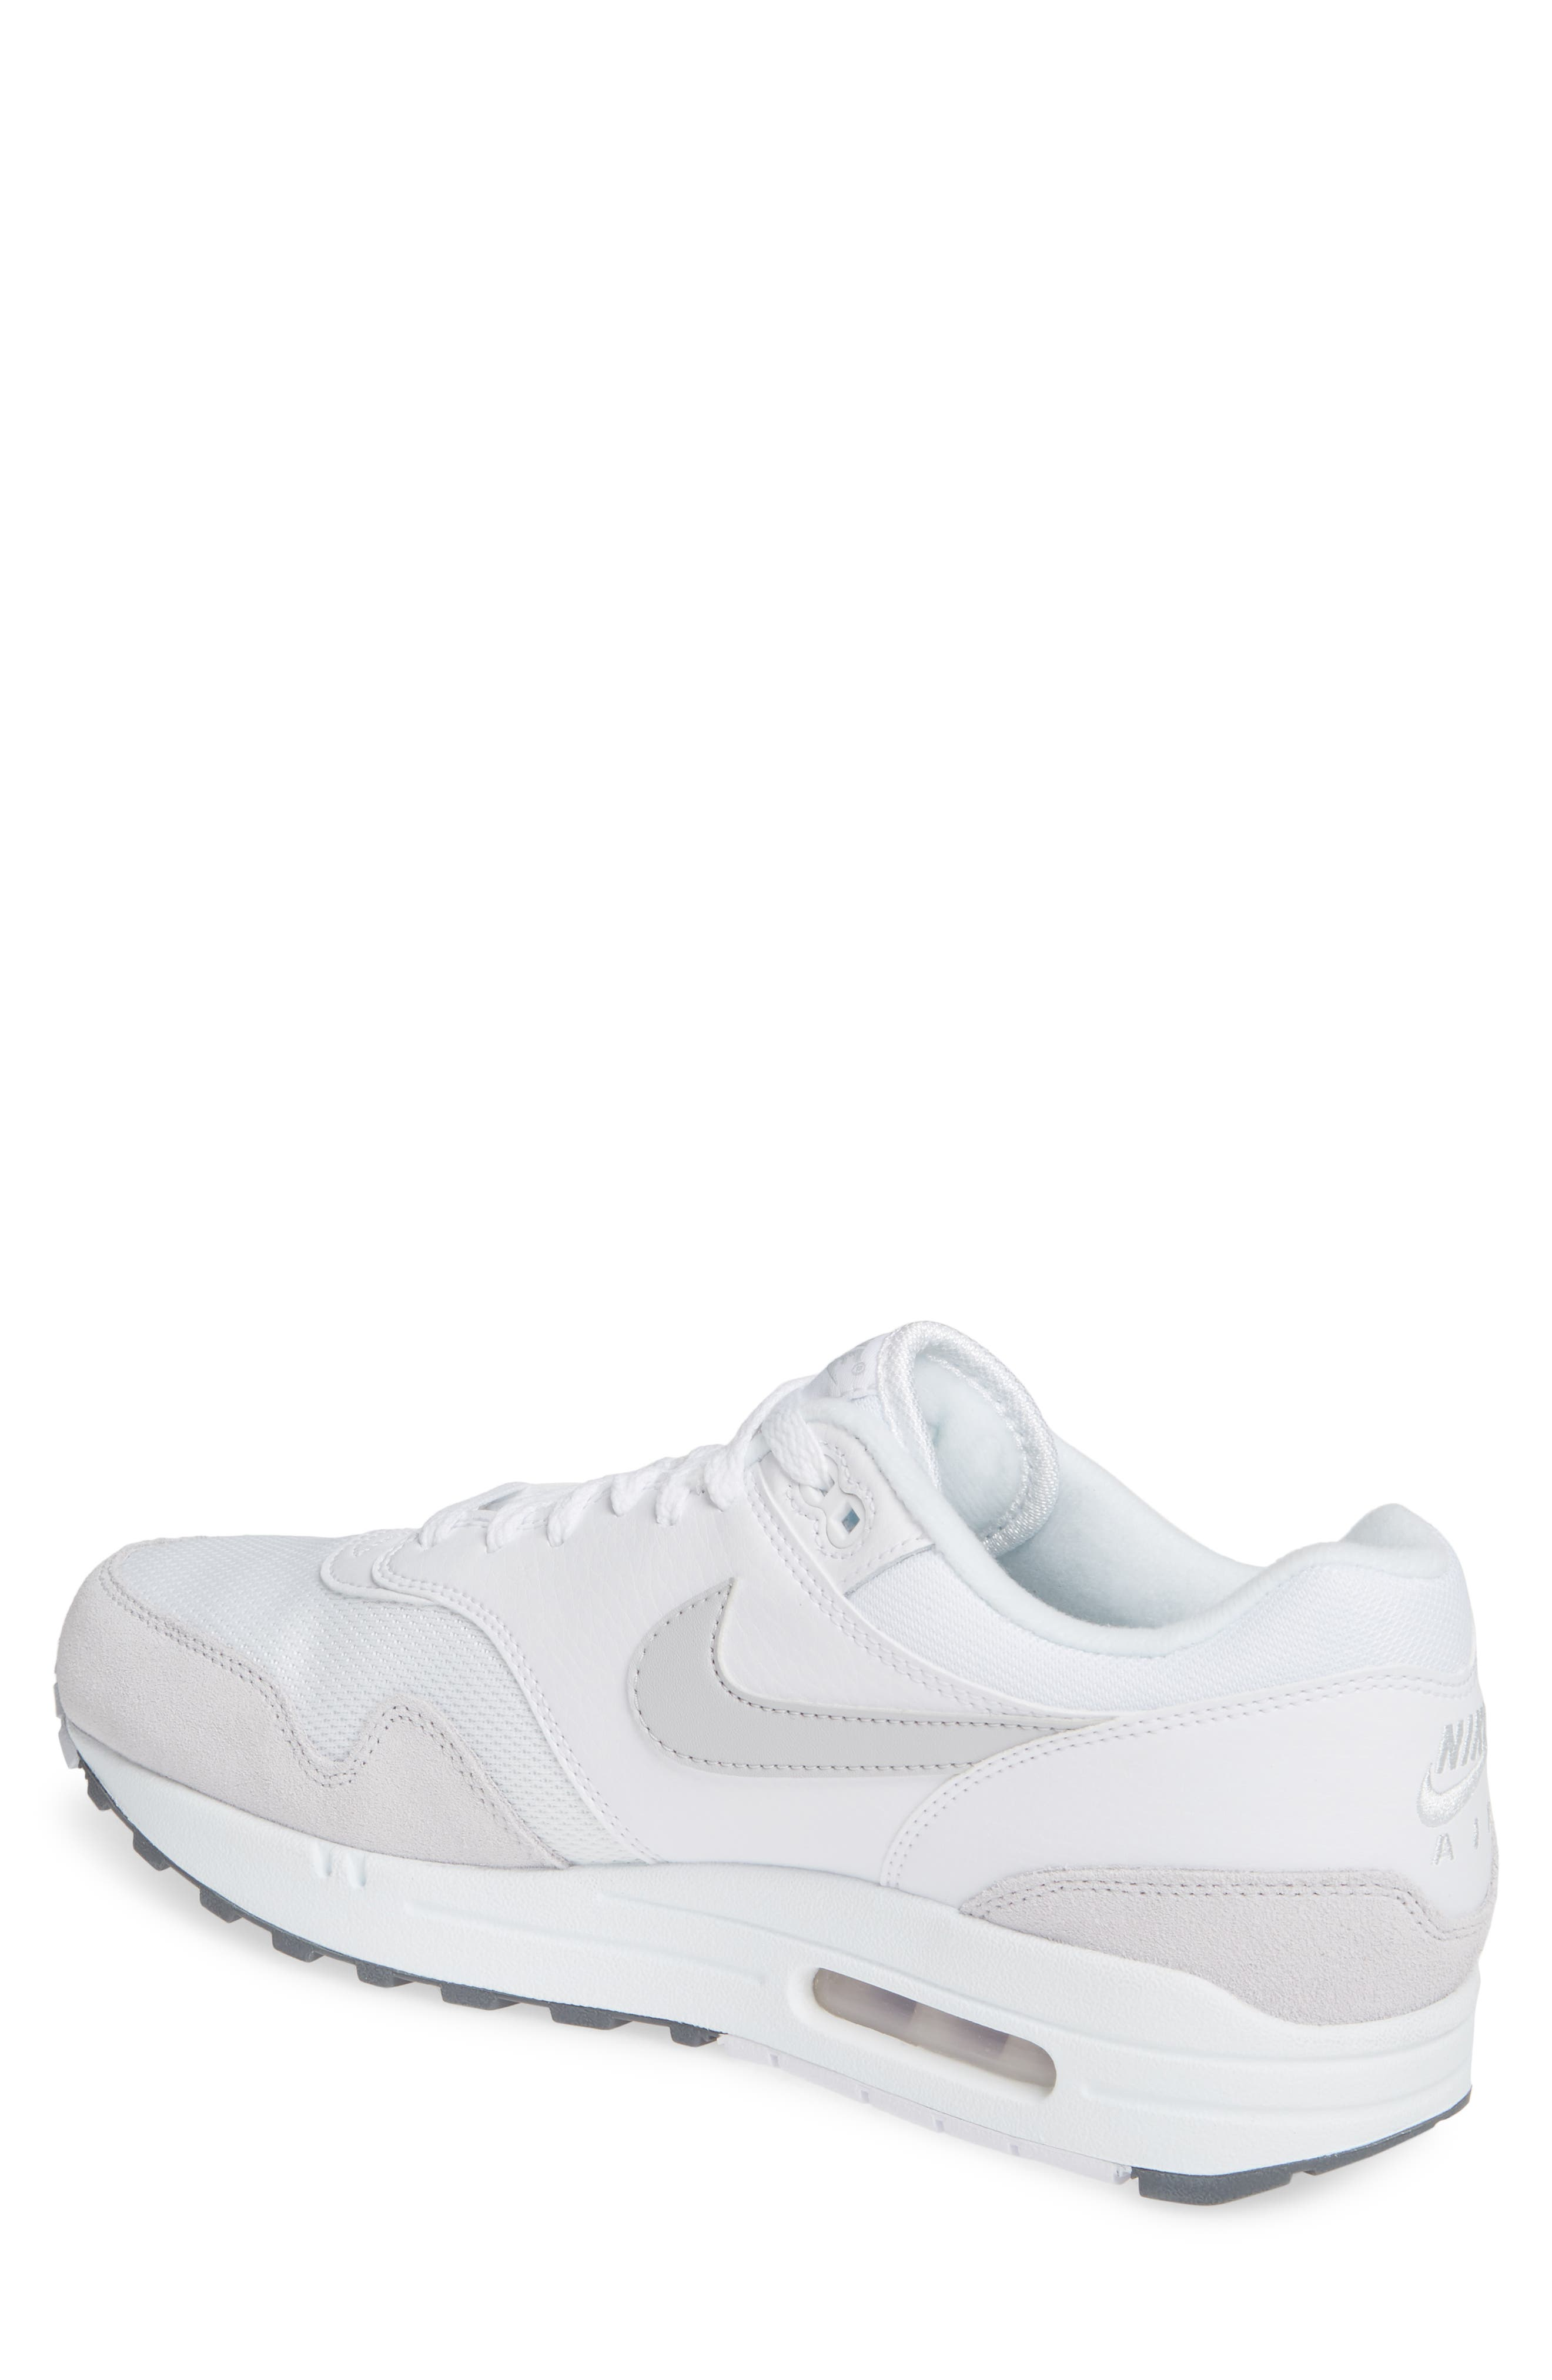 huge selection of 8a0b7 9f614 Men's Nike | Nordstrom